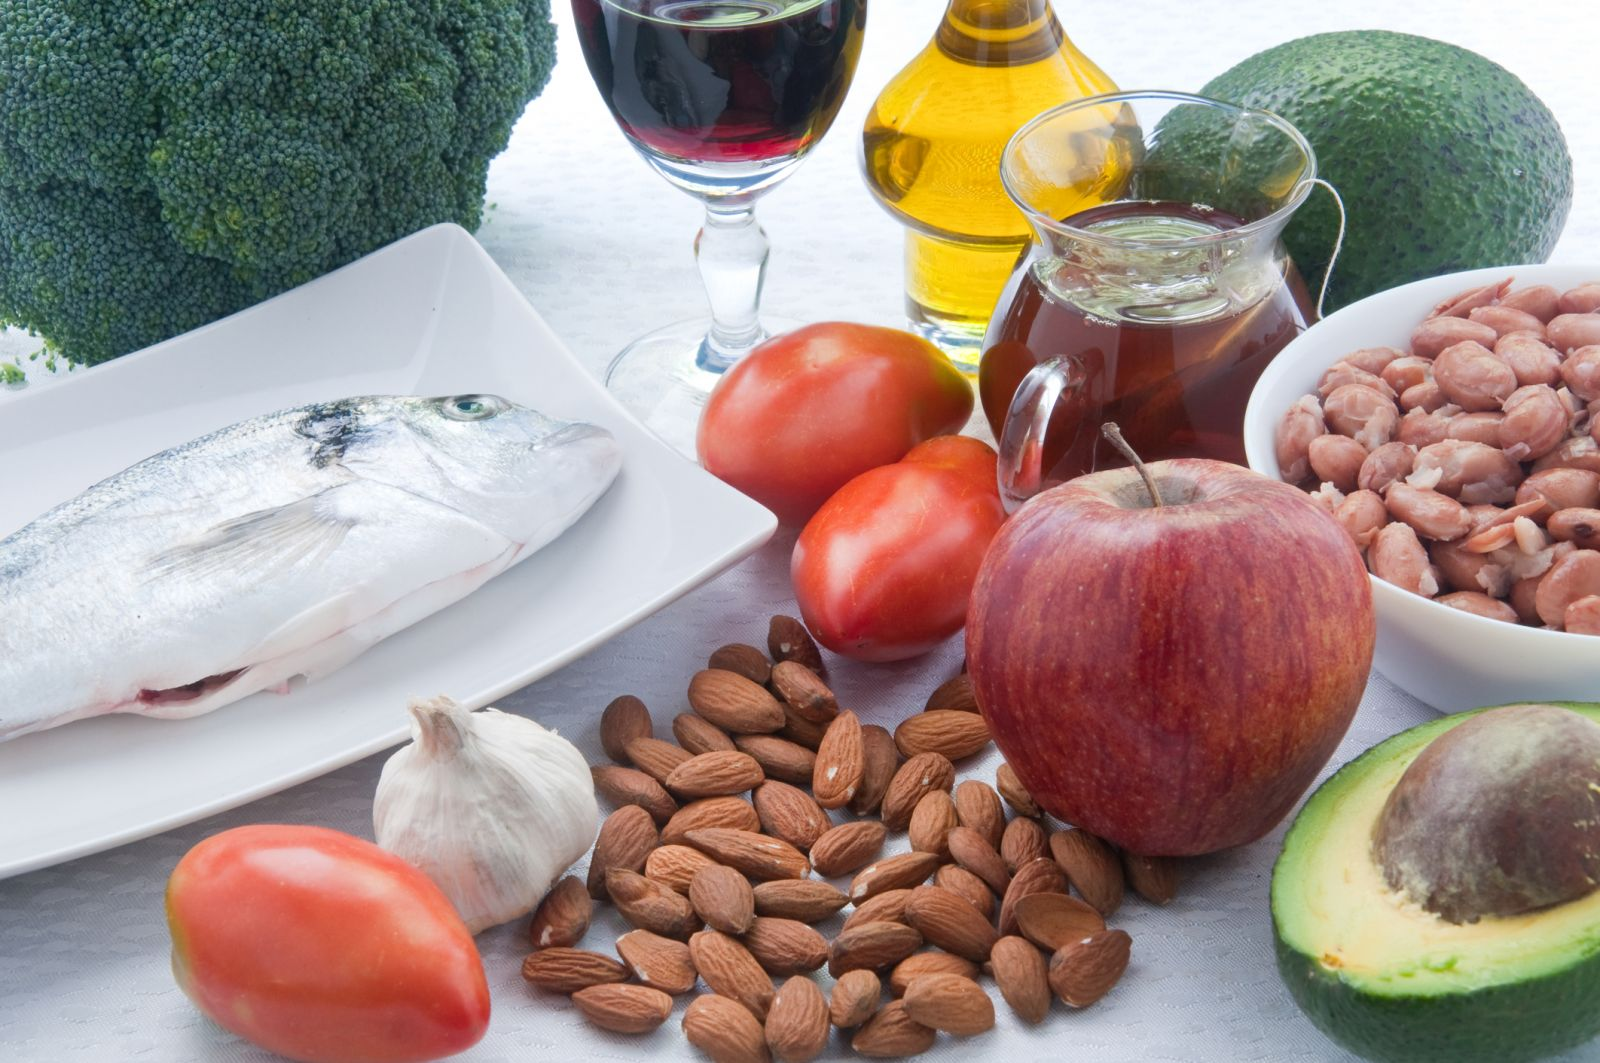 Reasons why decreasing cholesterol level is important